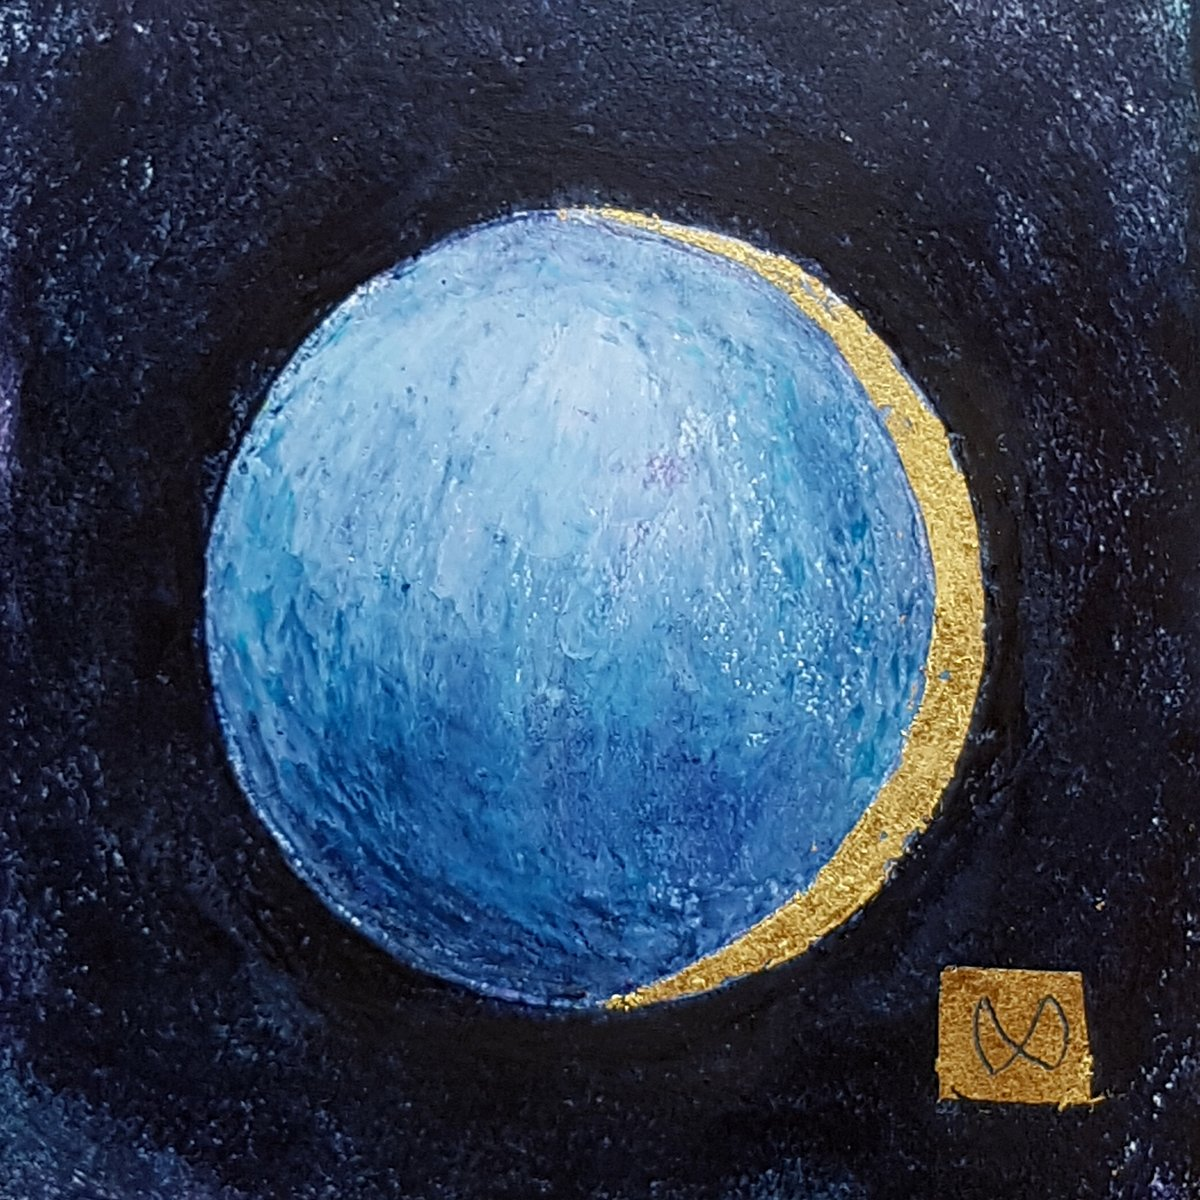 The Moon, lunar eclipse, Earth's shadow, brightness, darkness, teal purple, light blue